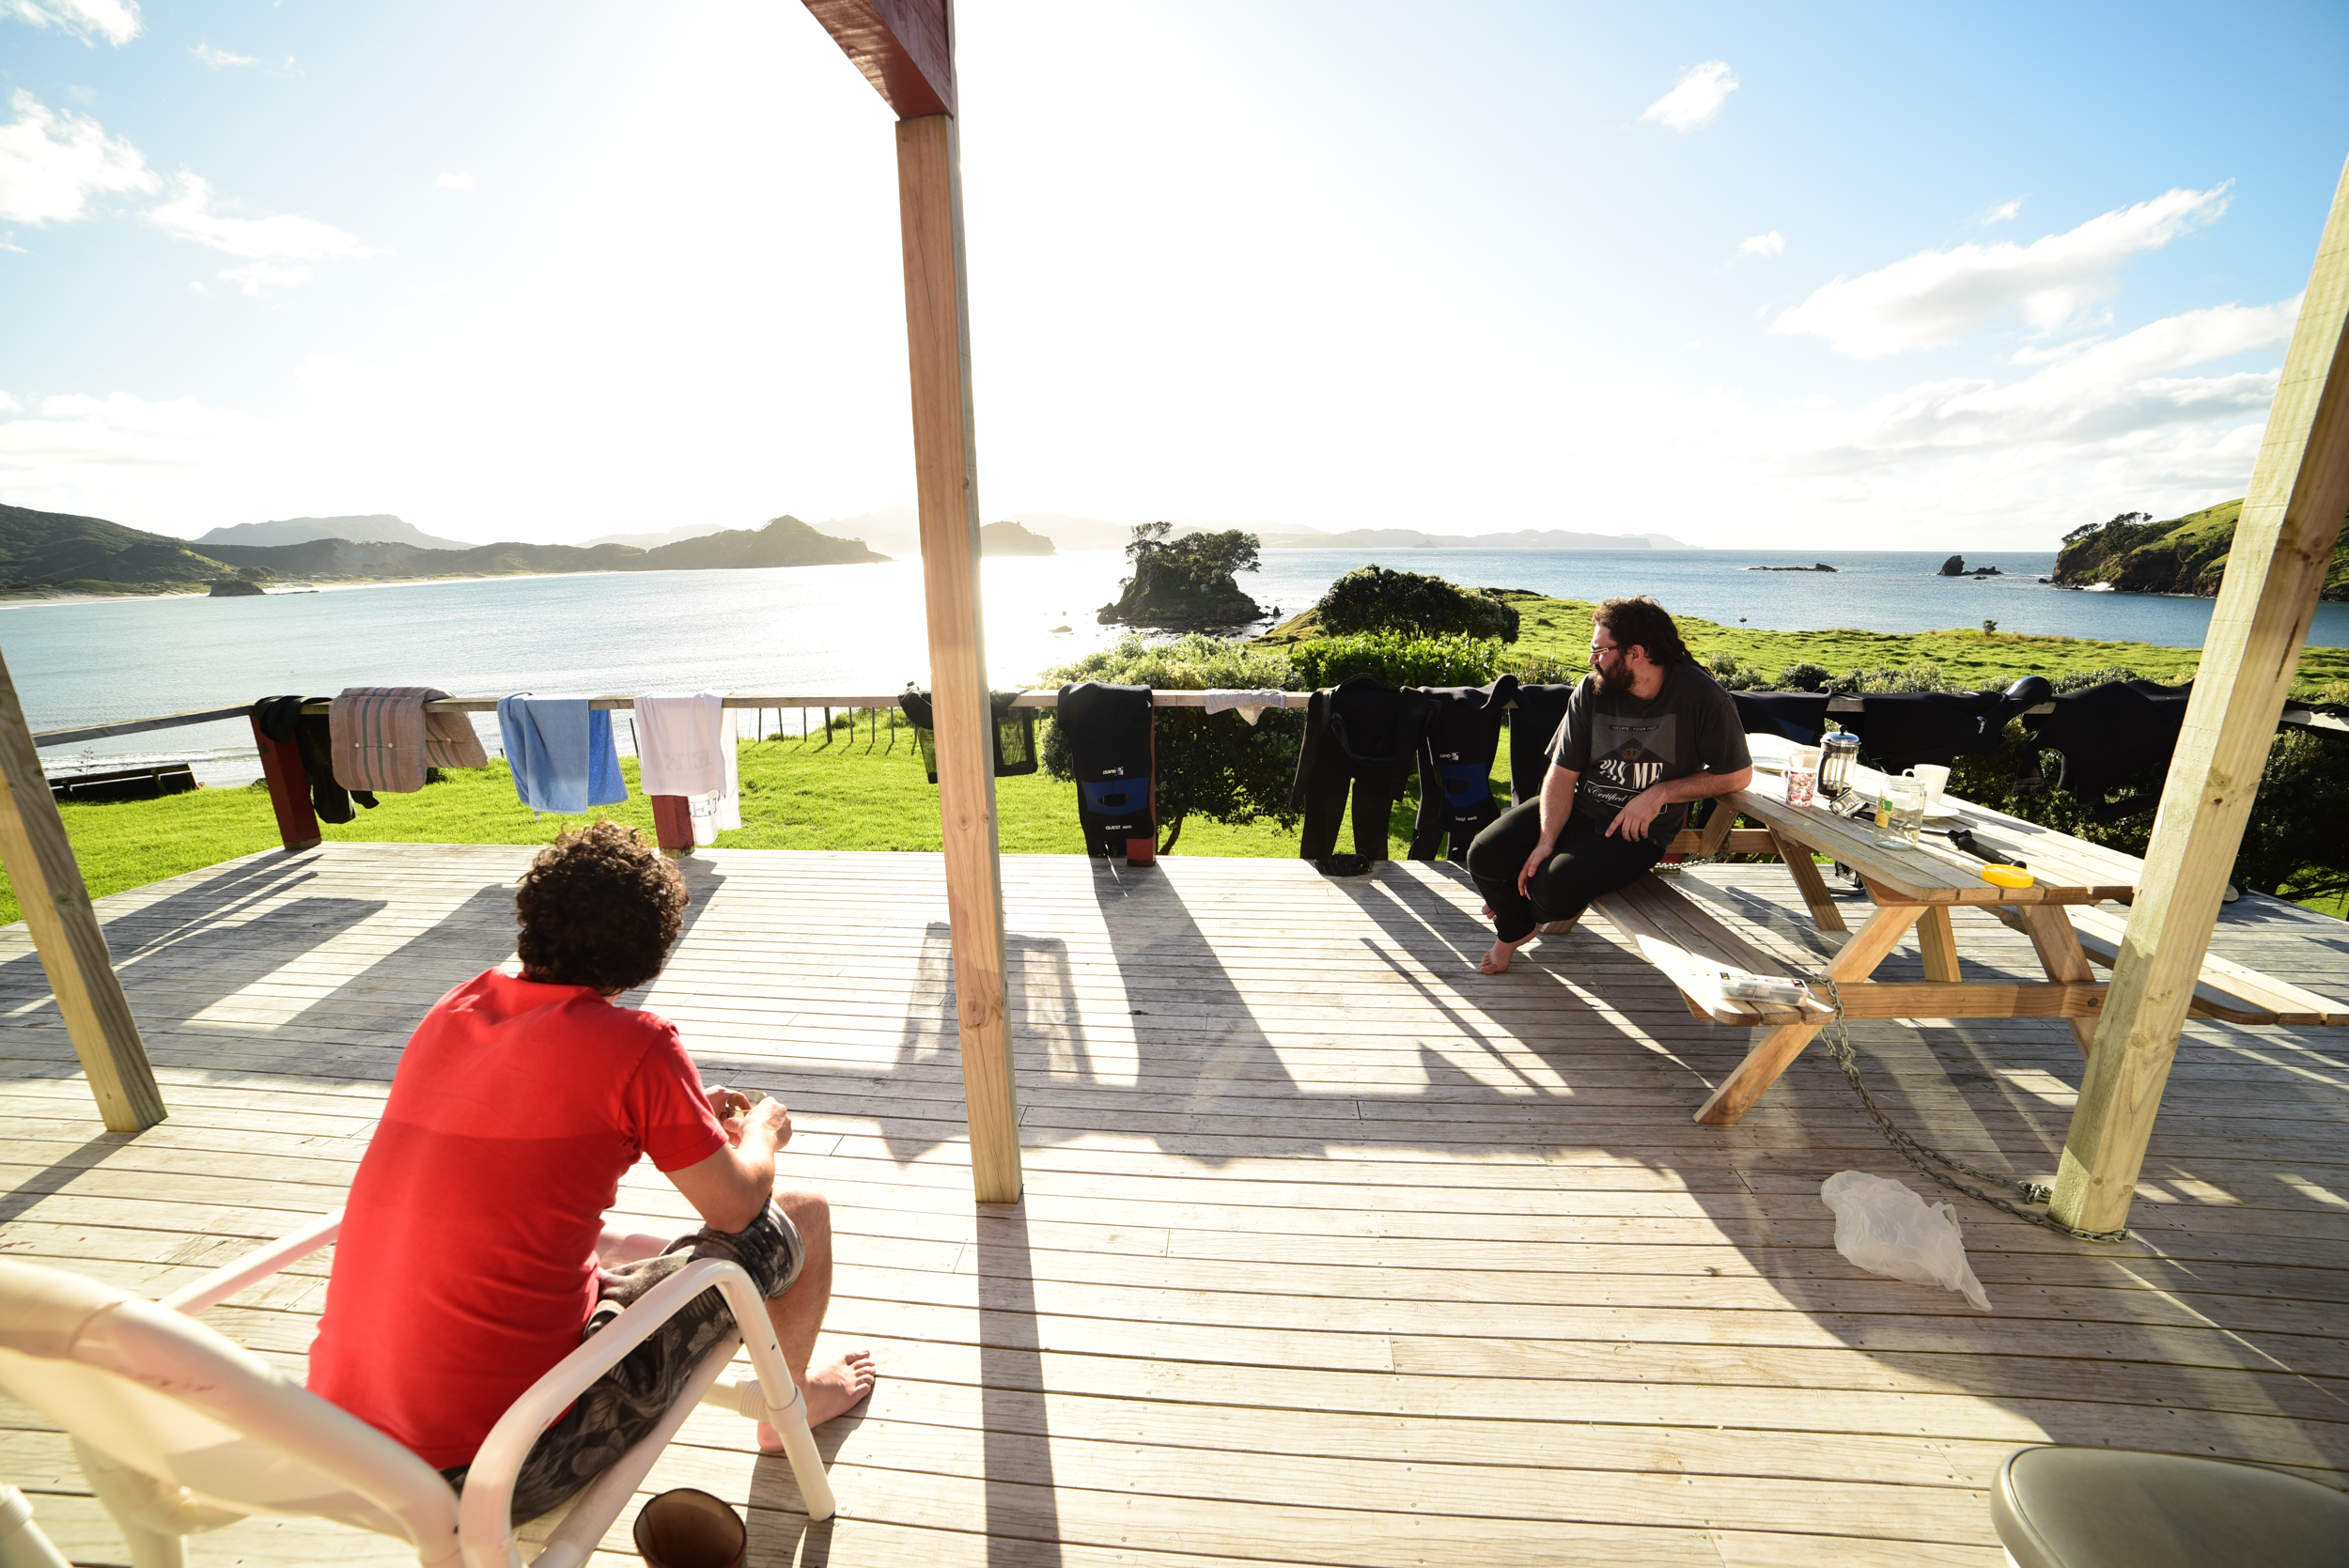 Epic sun, huge line up of wetsuits to dry off.